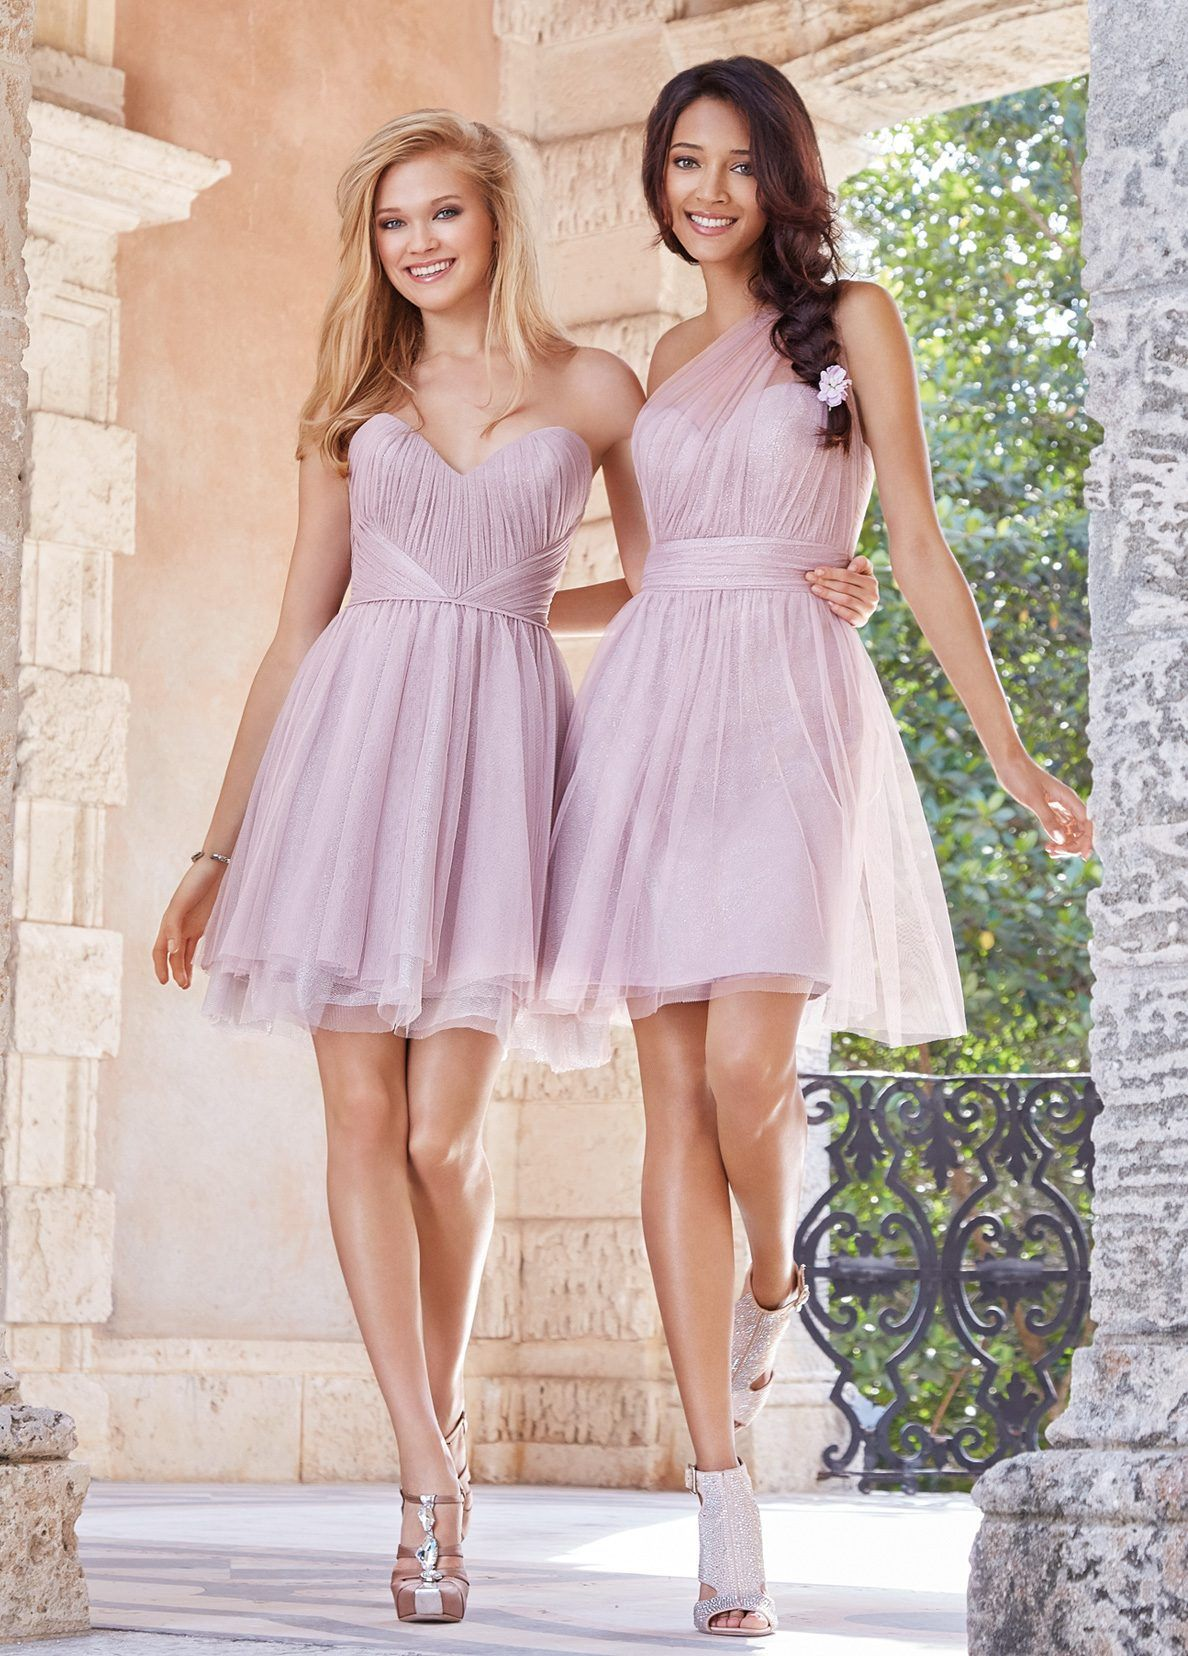 Bridesmaids special occasion dresses and bridal party gowns by bridesmaids special occasion dresses and bridal party gowns by jlm couture style 5512 ombrellifo Gallery